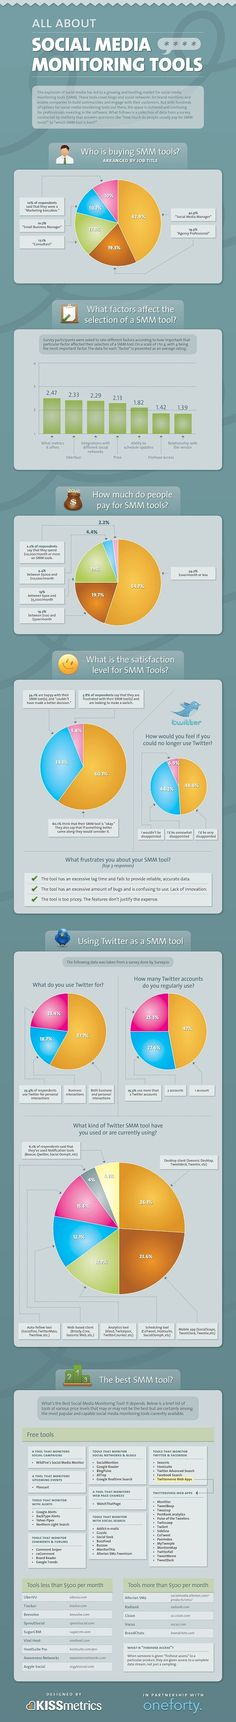 Excellent roundup and explanation of Social Media Monitoring Tools thanks to  and .     Oneforty surveyed 150 social media professionals to learn about what their main concerns were when it came to social media monitoring. The infographic shows their main questions, as well as favorite social media monitoring tools. The list of tools at the bottom shows the most popular tools according to survey respondents who answered a question regarding which tools they use.